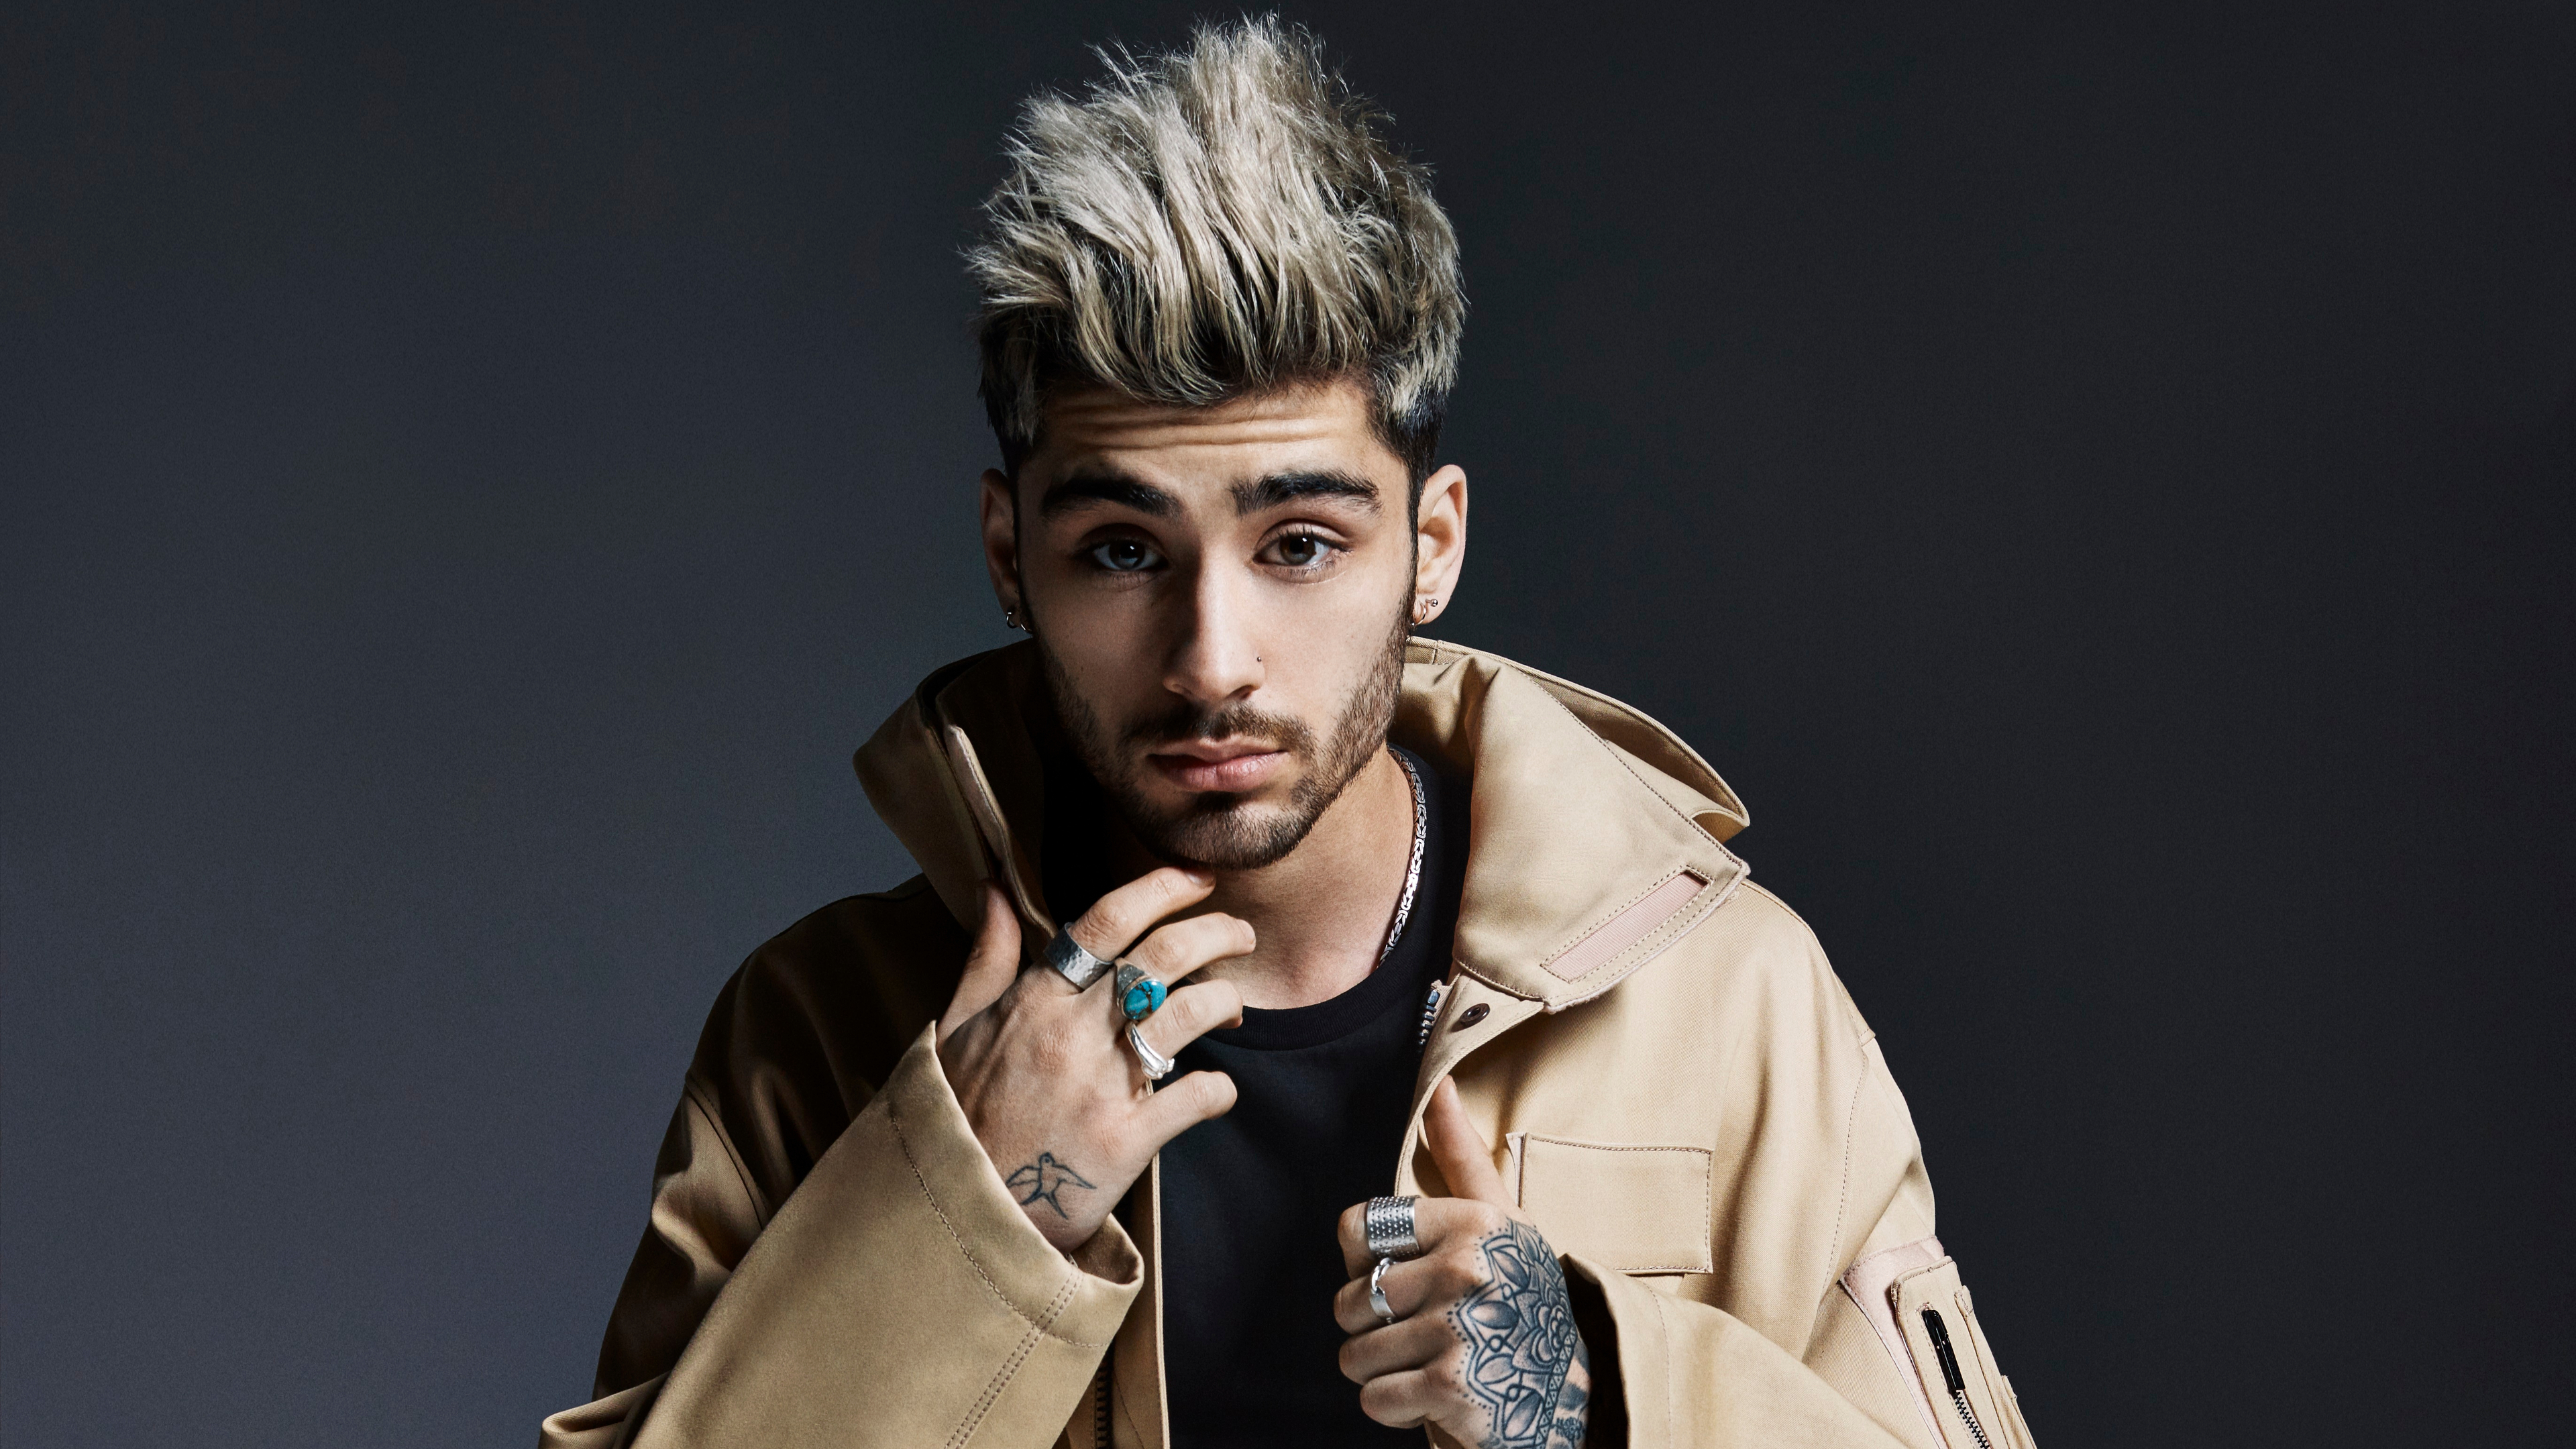 Wallpaper 4k Zayn 2018 4k 4k Wallpapers 5k Wallpapers Boys Wallpapers Hd Wallpapers Male Celebrities Wallpapers Music Wallpapers Singer Wallpapers Zayn Malik Wallpapers